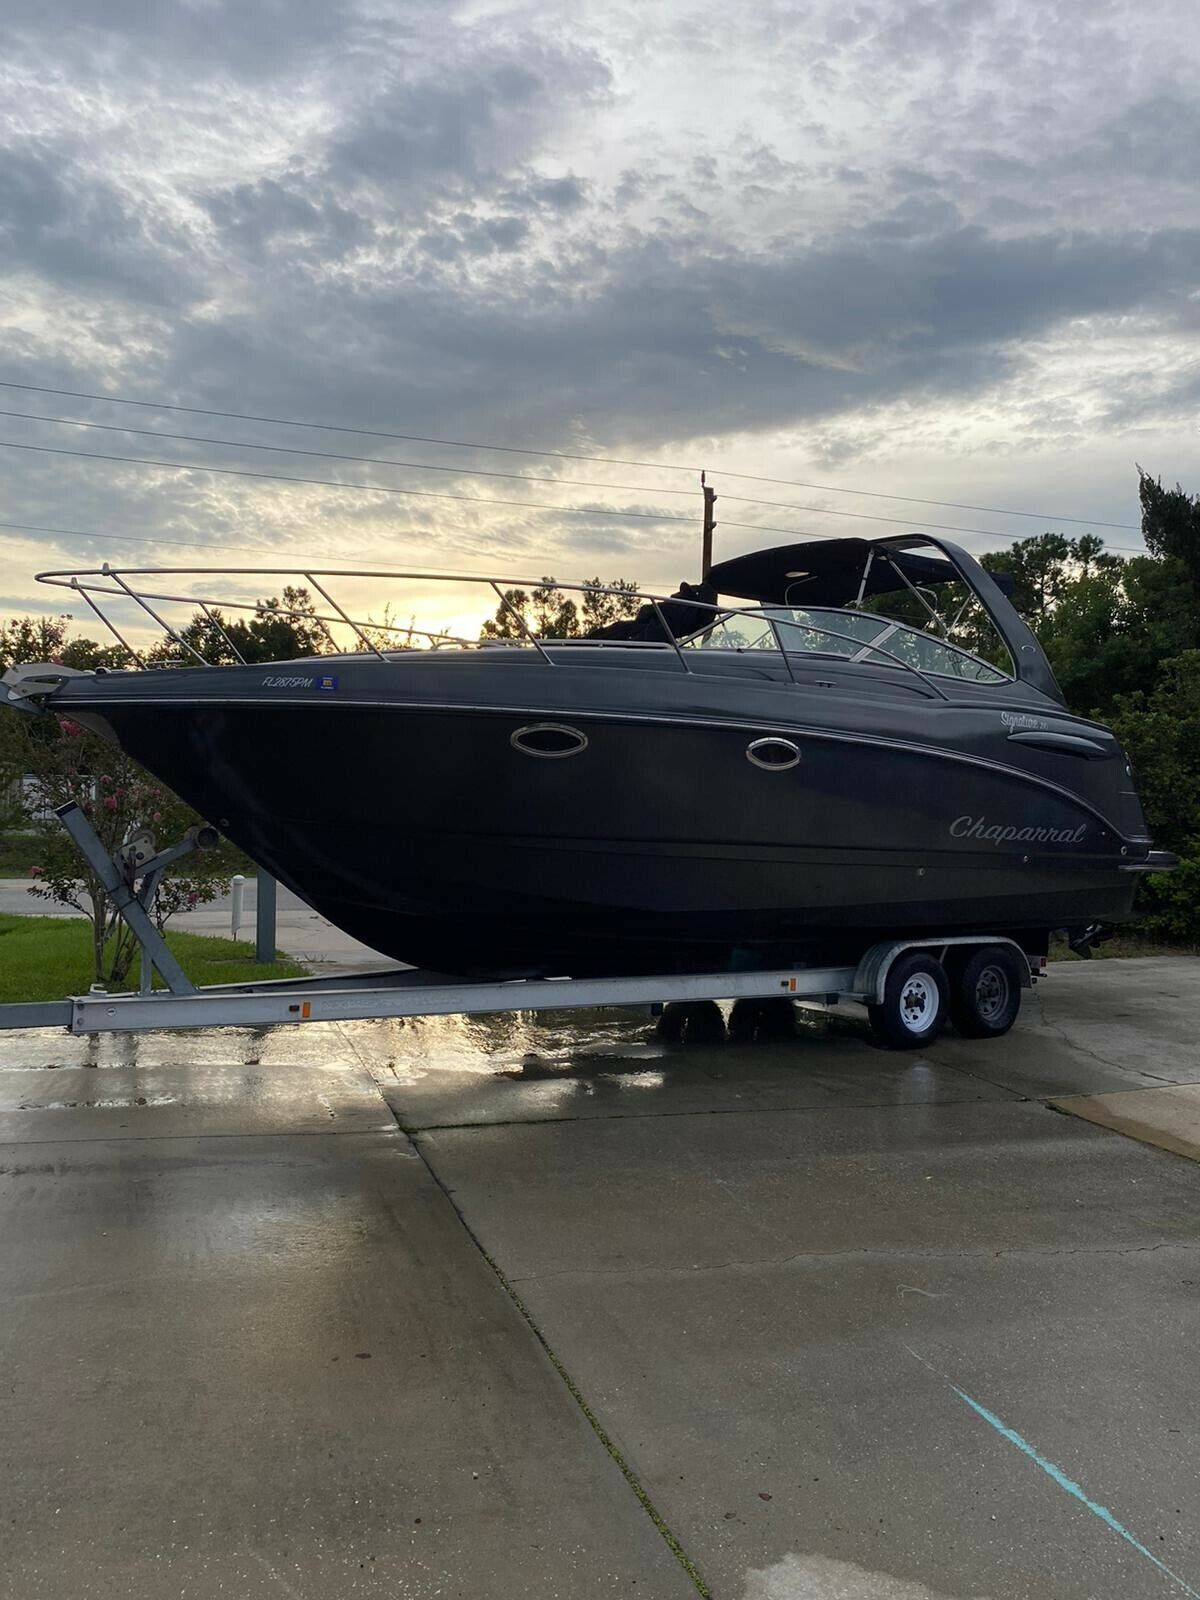 2002 Chaparral signature 280 Beautiful cruising boat, one of a kind!